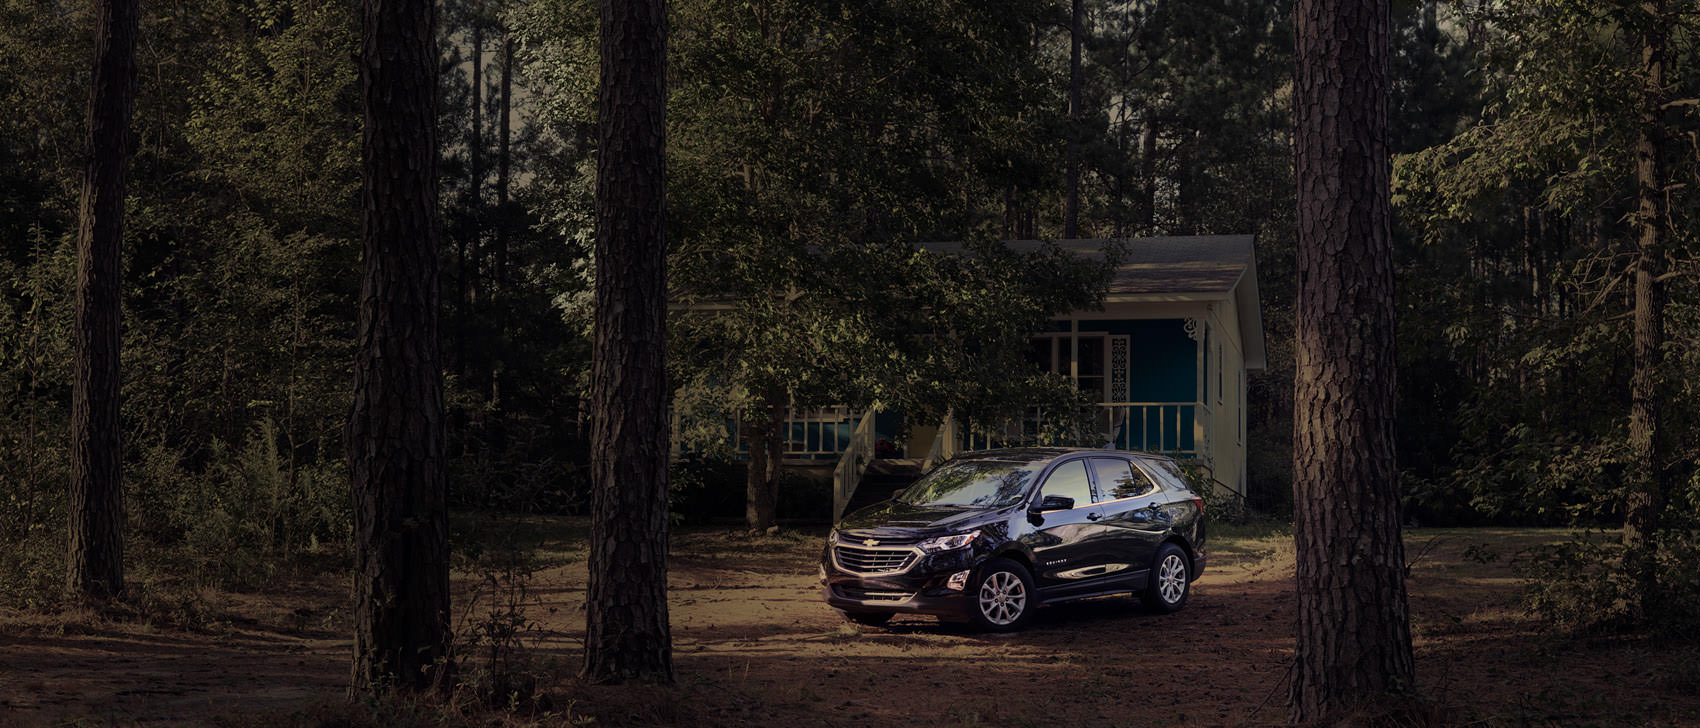 Chevrolet Equinox in the Woods high by Sascha Hauk